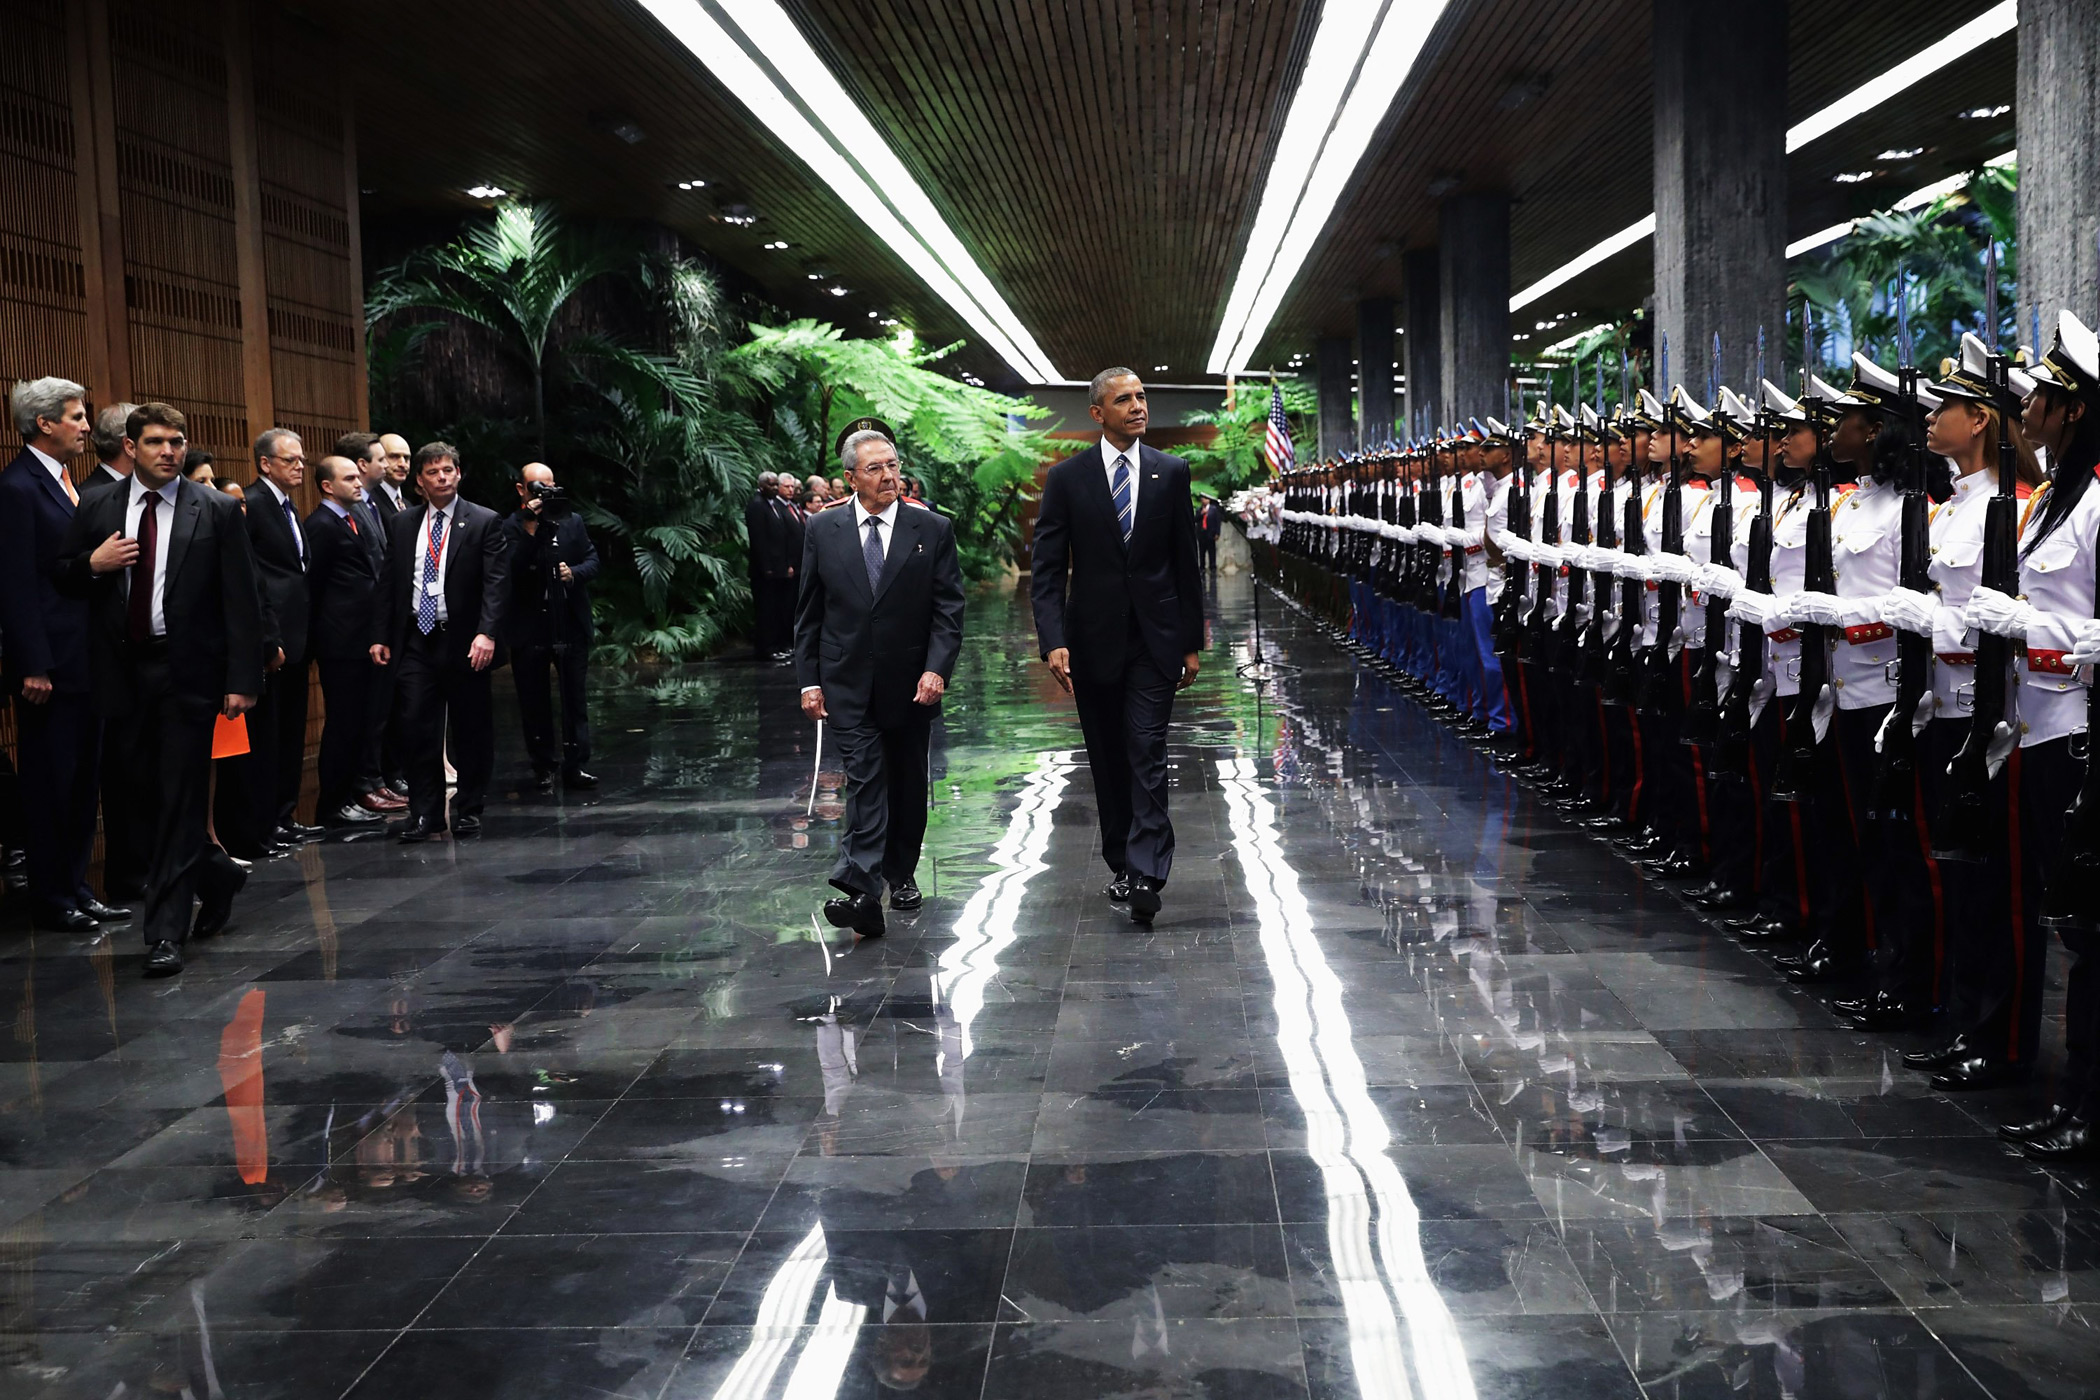 President Barack Obama  and President Raul Castro review troops before bilateral meetings at the Palace of the Revolution on March 21, 2016 in Havana.